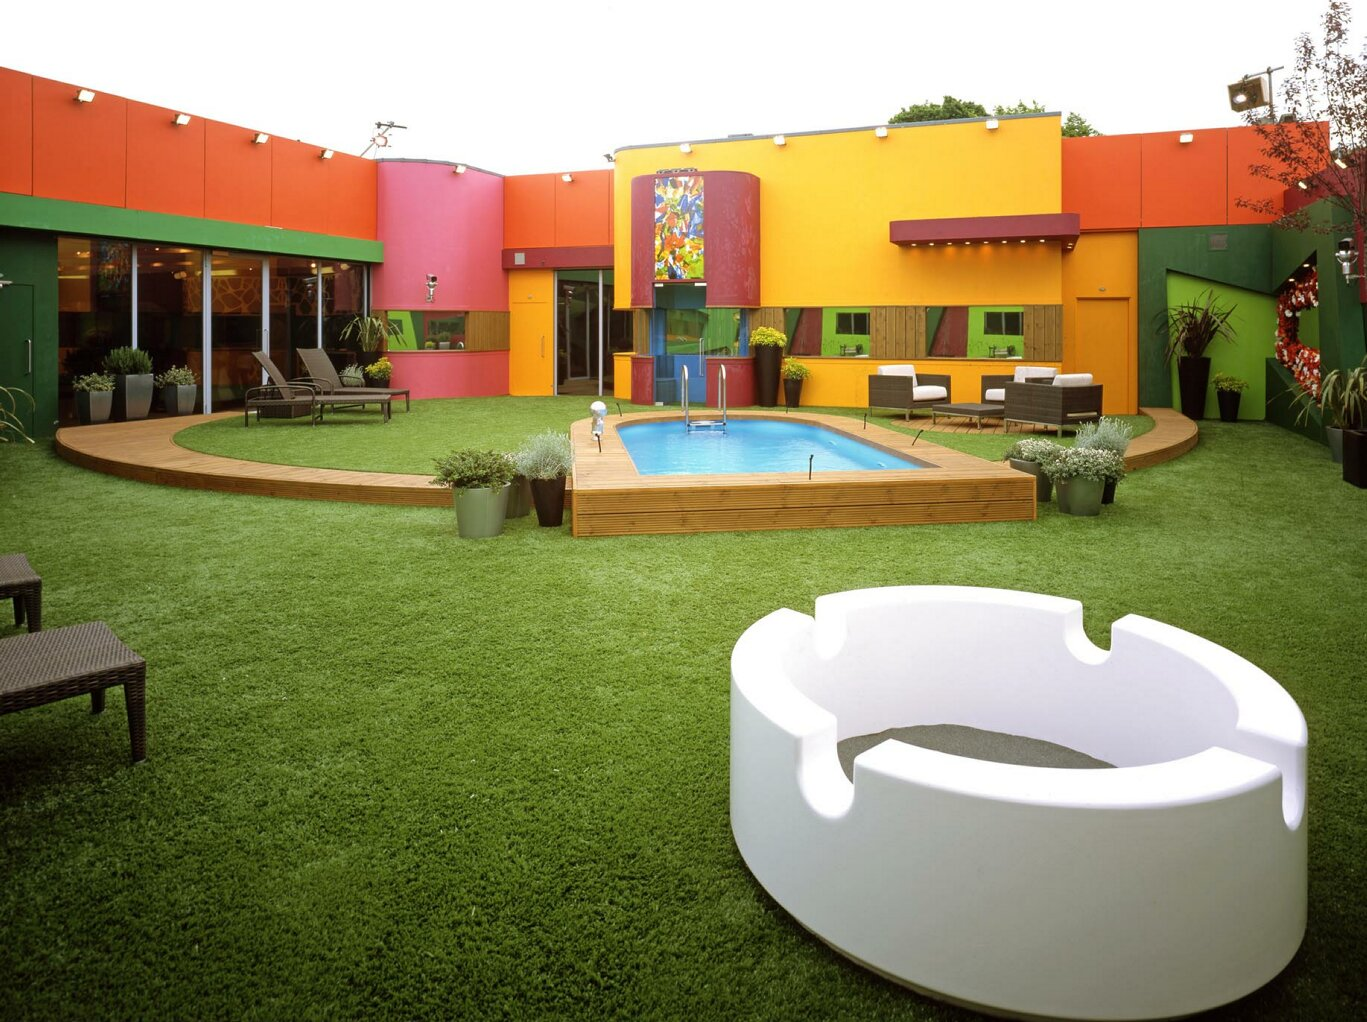 National Trust opens the Big Brother house in a commercially daring